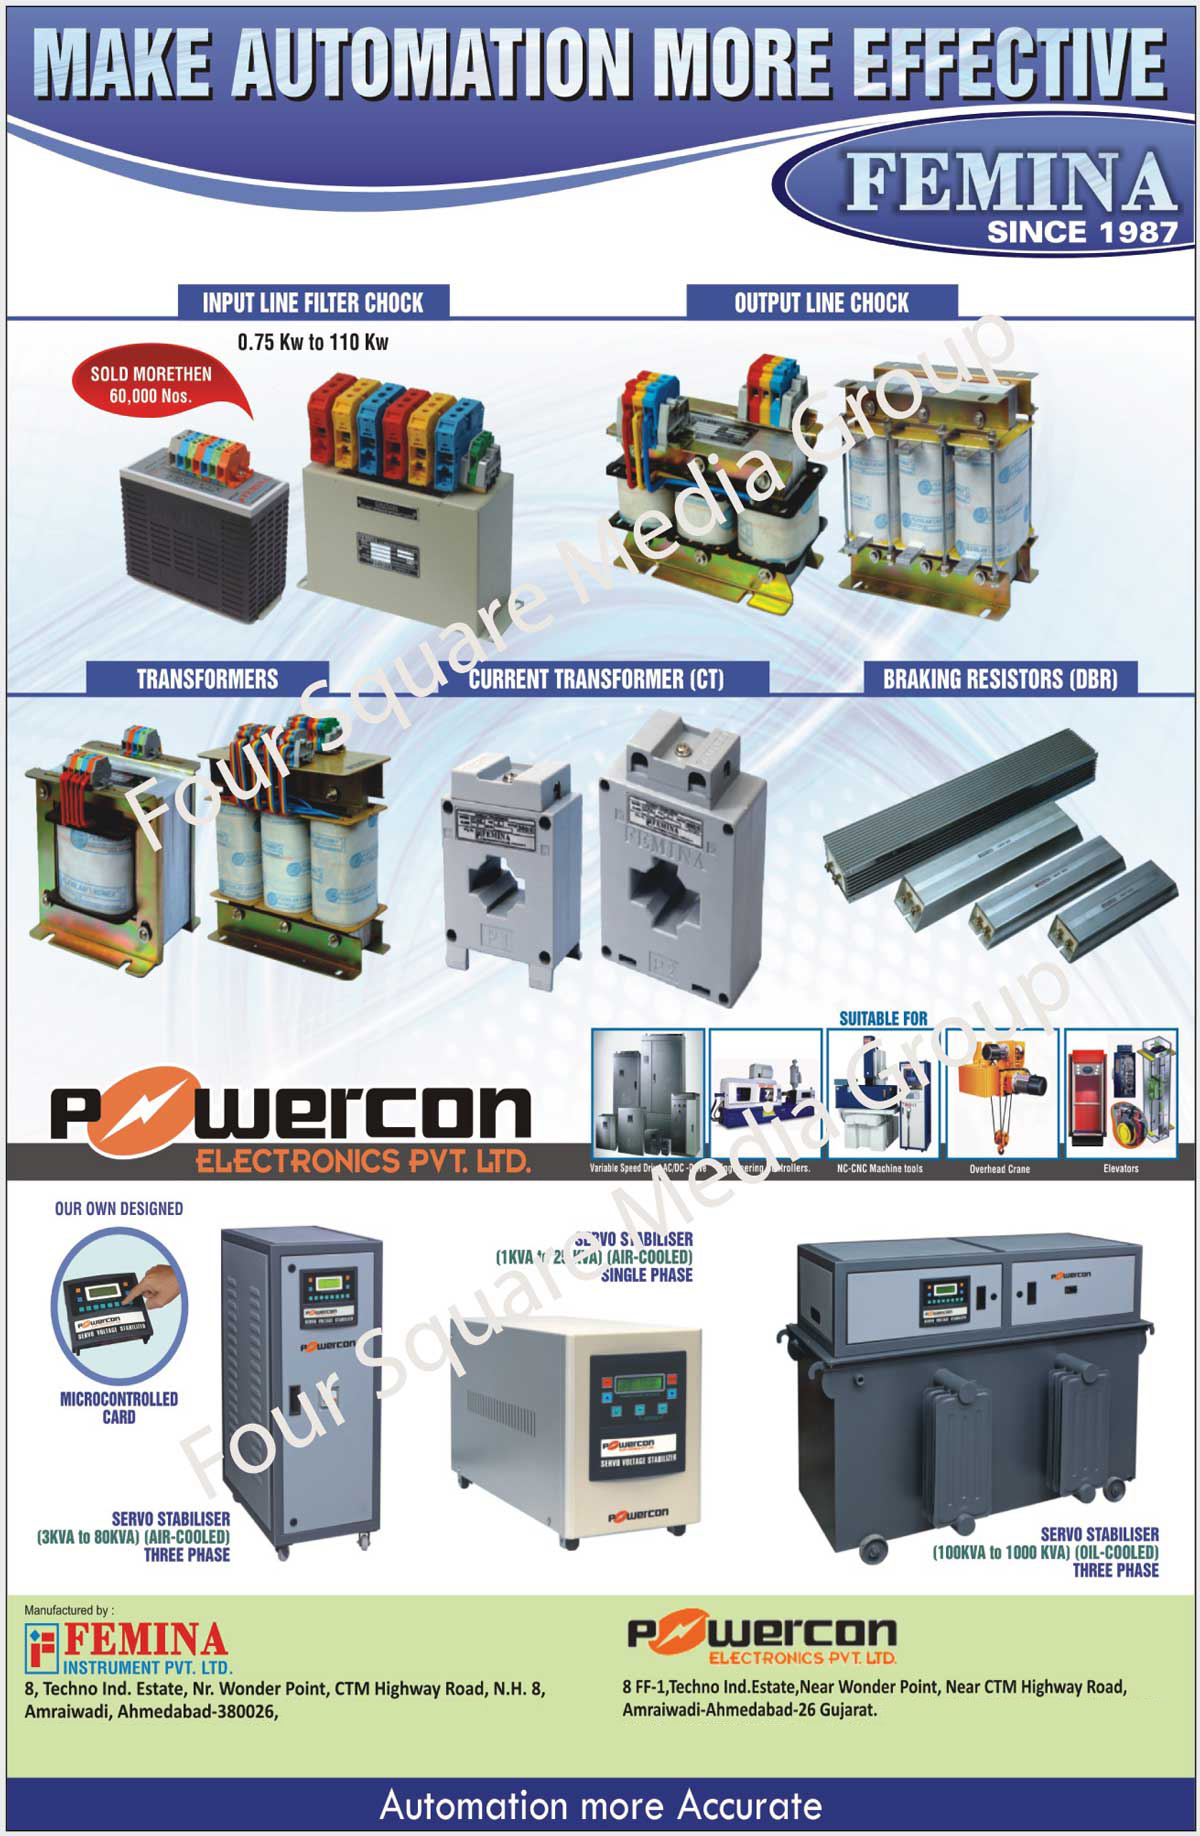 Input Line Filter Chocks, Output Line Chocks, Current Transformers, DBR Braking Resistors, Three Phase Air Cooled Servo Stabilizers, Single Phase Air Cooled Servo Stabilizers, Three Phase Oil Cooled Servo Stabilizers, Control Transformers, Isolation Transformers, Input Line Filter Chokes, Output Line Chokes